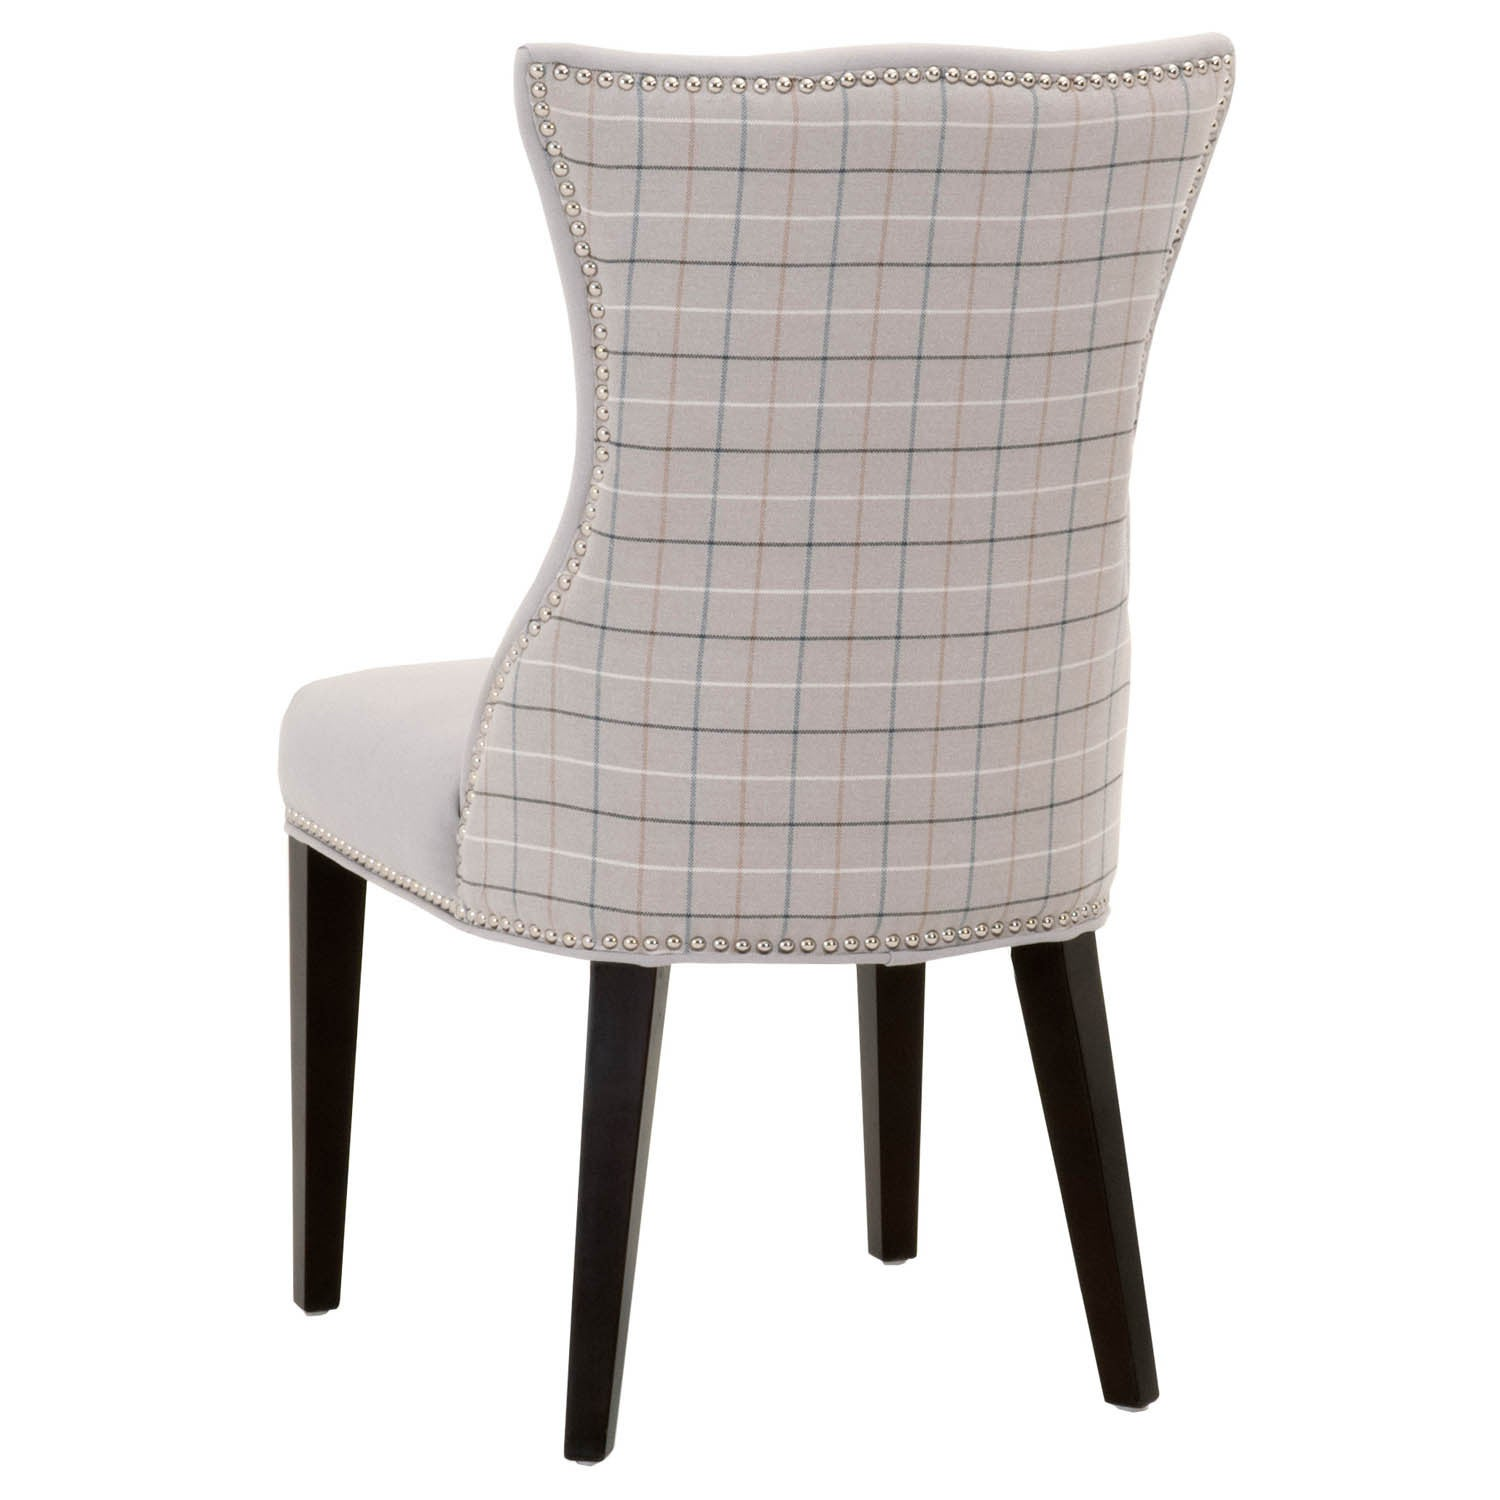 Shop Grey Manor Frasier Light Grey Wood Dining Chair (Set of 2) - Free Shipping Today - Overstock.com - 13536189  sc 1 st  Overstock.com & Shop Grey Manor Frasier Light Grey Wood Dining Chair (Set of 2 ...